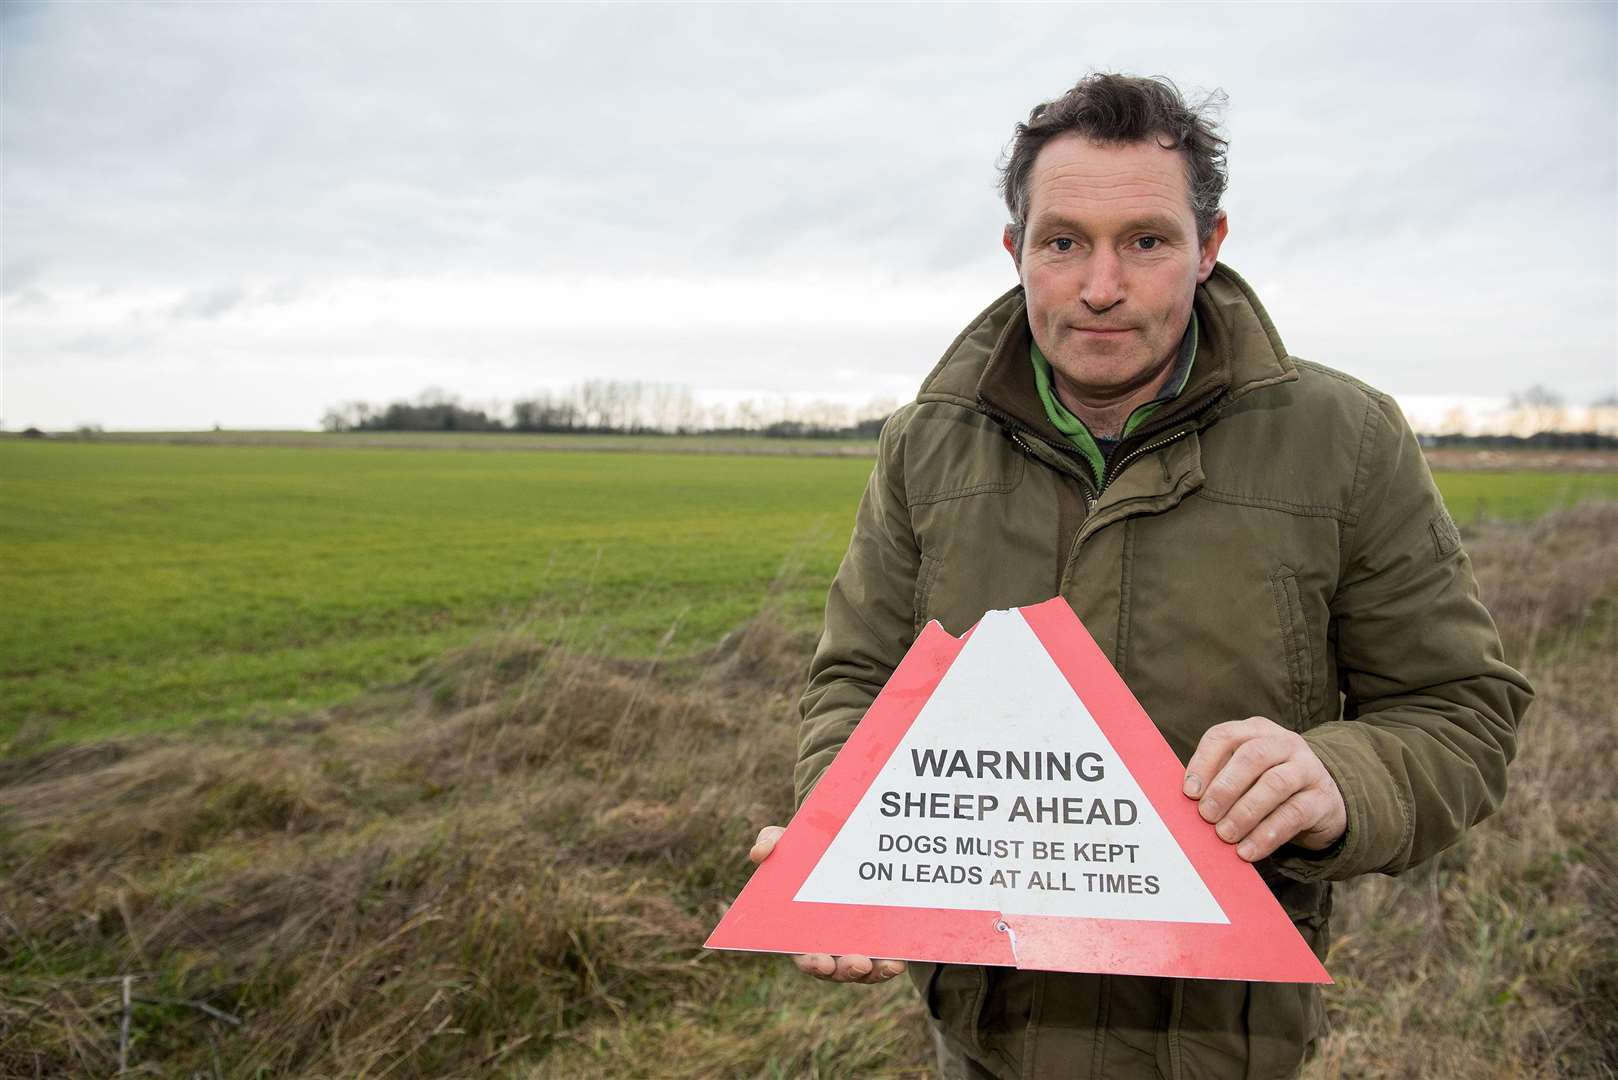 ACTON: Dog attack at farm..Acton farmer Jamie Gregory is urgently appealing for dog walkers to keep their pets on a leash when near livestock, after one of his sheep was seriously injured after being attacked by a dog that had gotten onto his farmland. Picture by Mark Westley. (6536948)